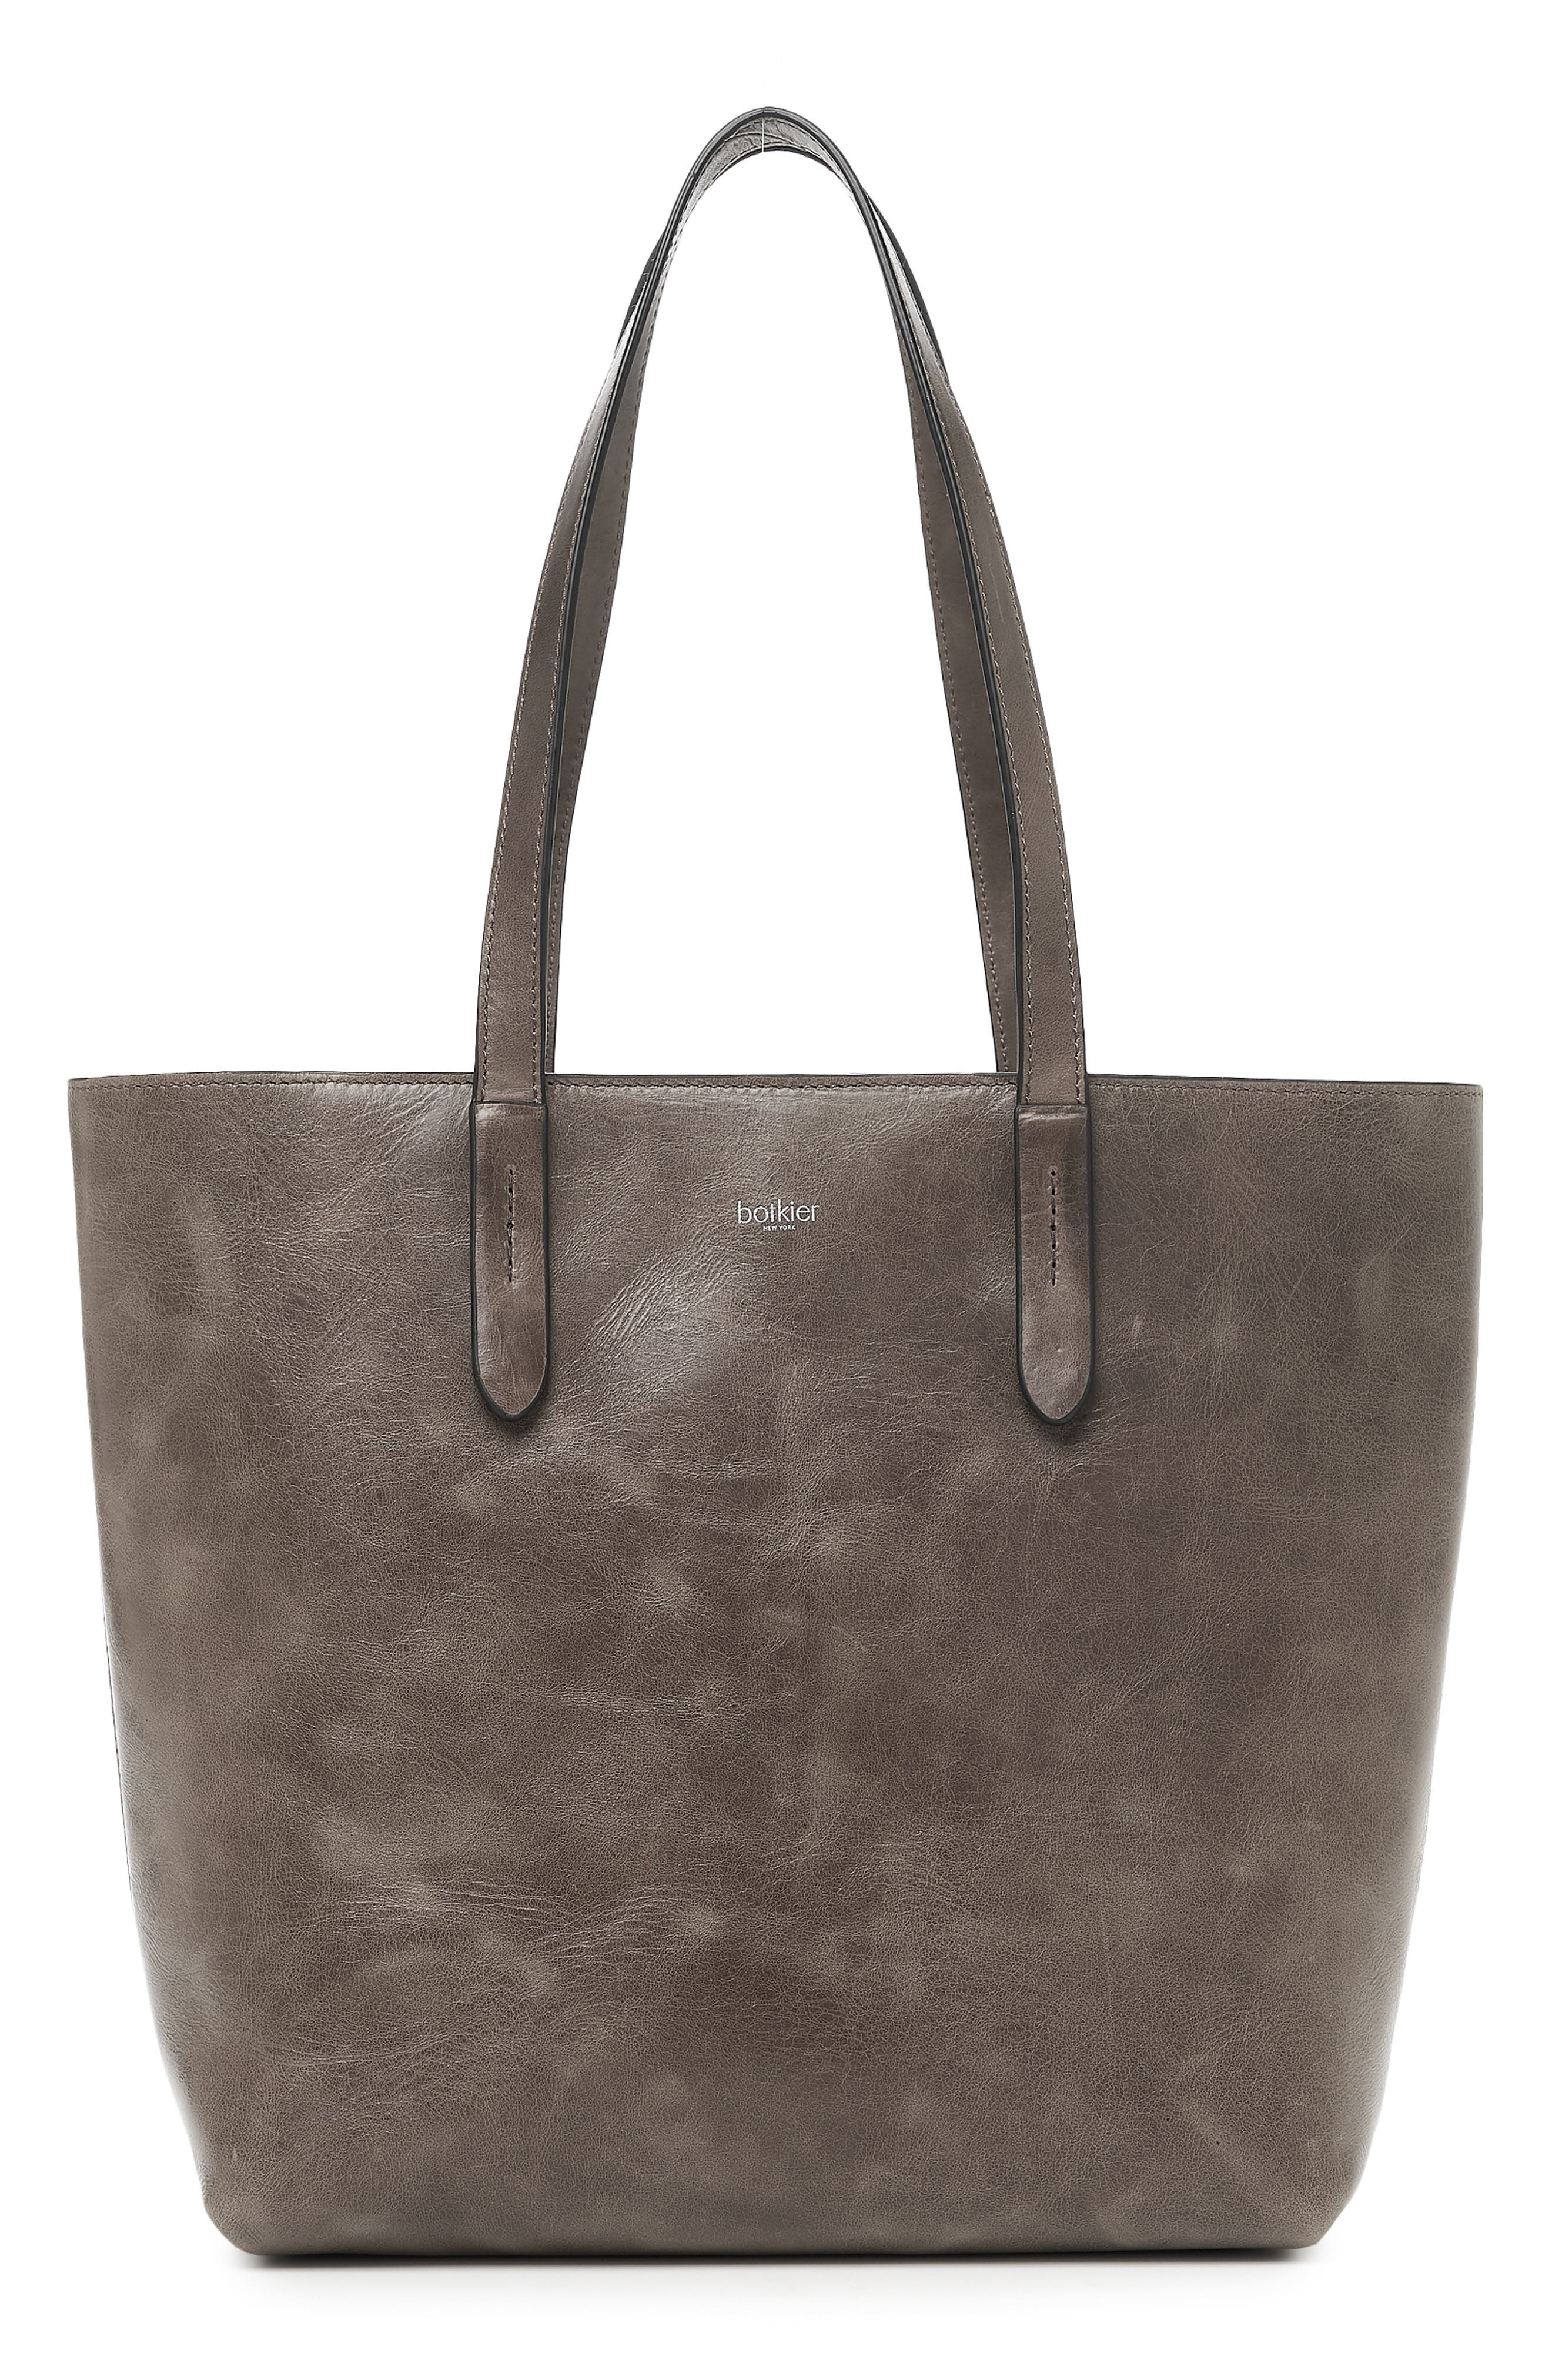 BOTKIER Highline Leather Tote, Main, color, WINTER GREY